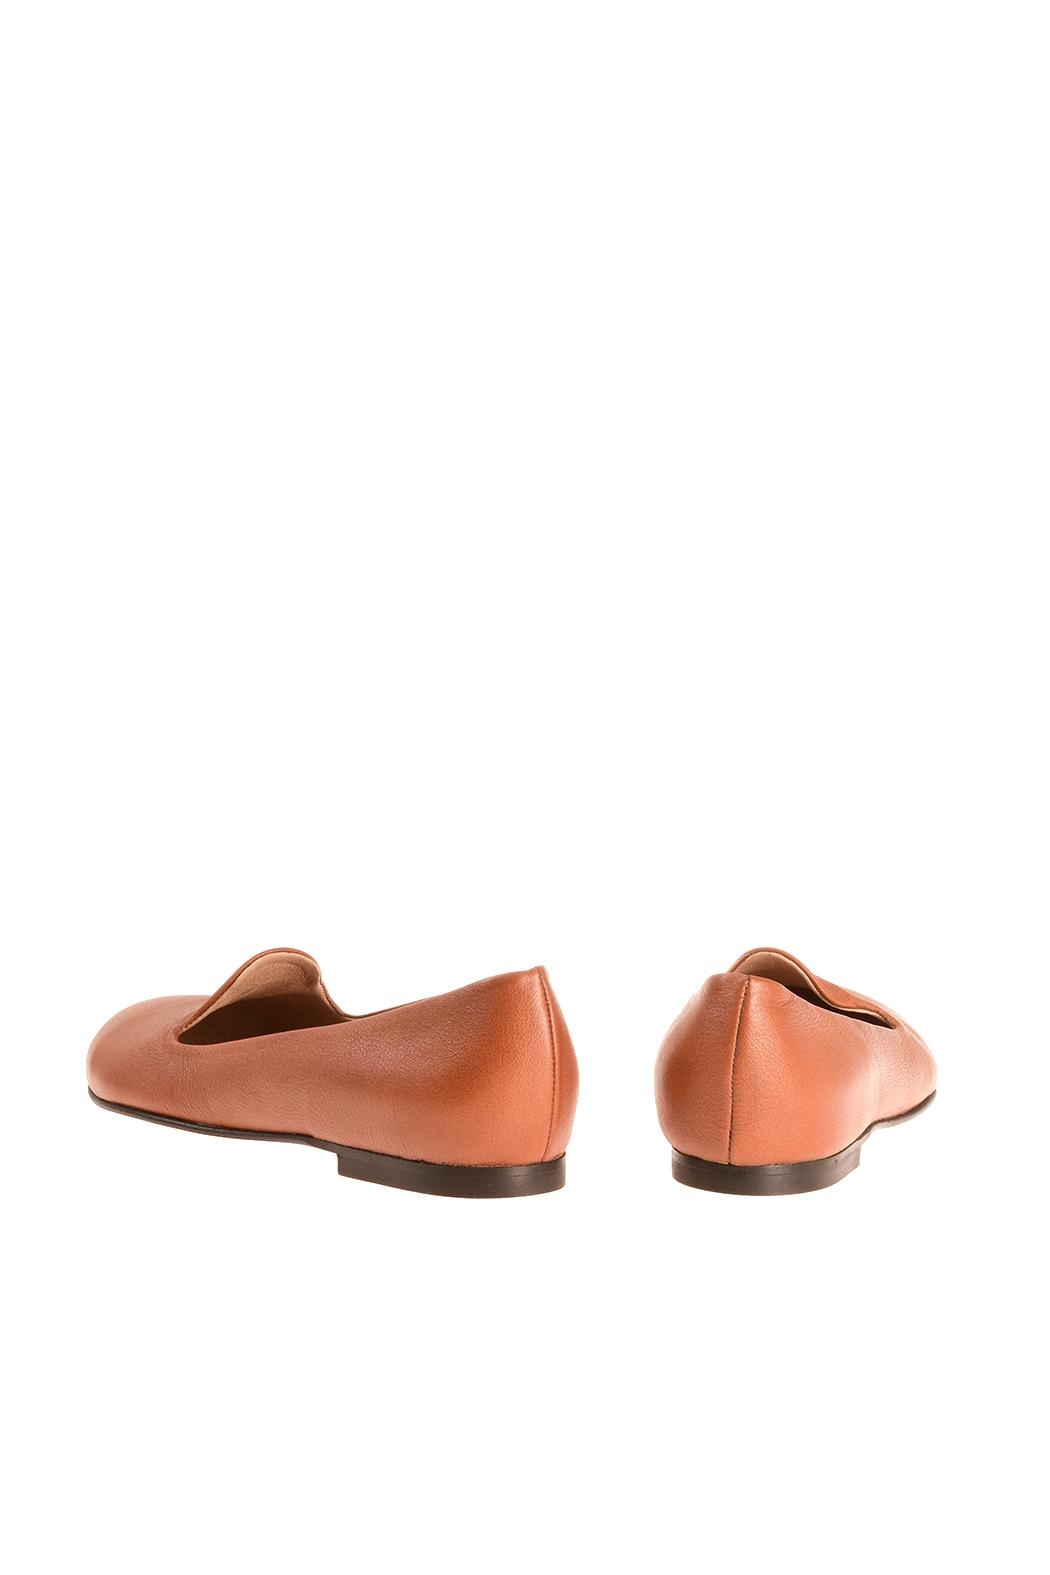 Bottega Bash Camel Leather Loafers - Side Cropped Image